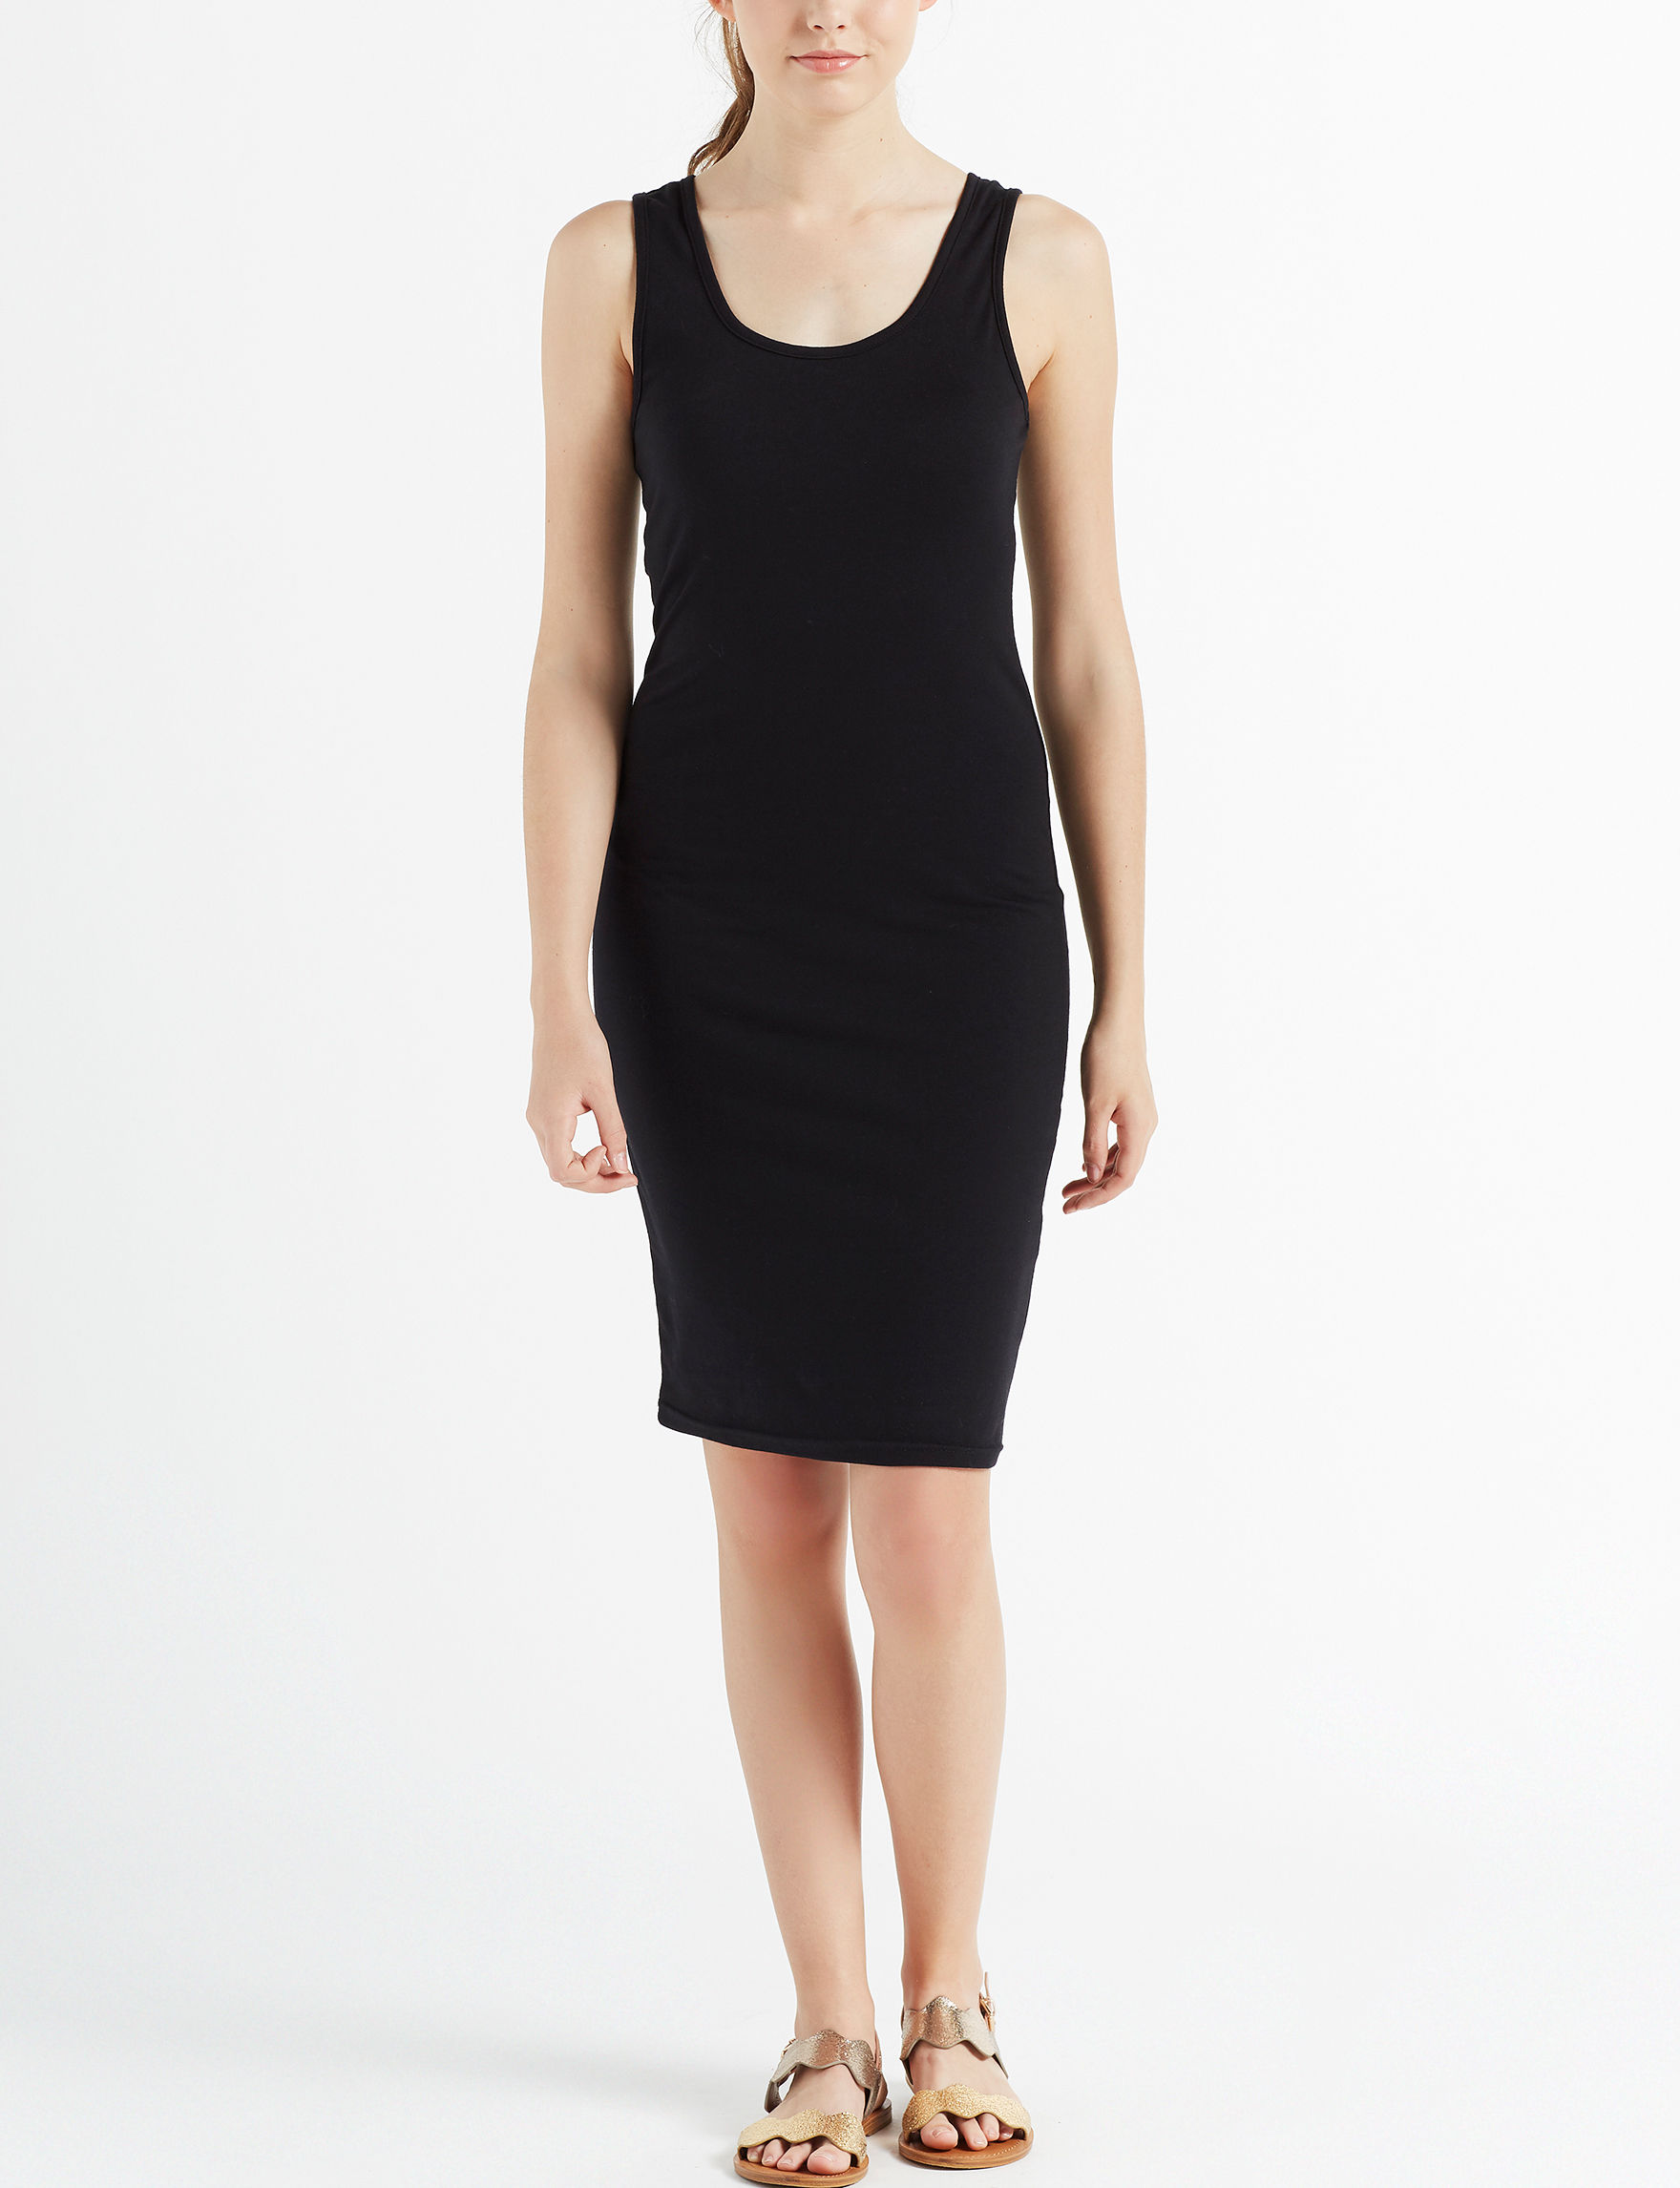 Wishful Park Black Everyday & Casual Bodycon Dresses